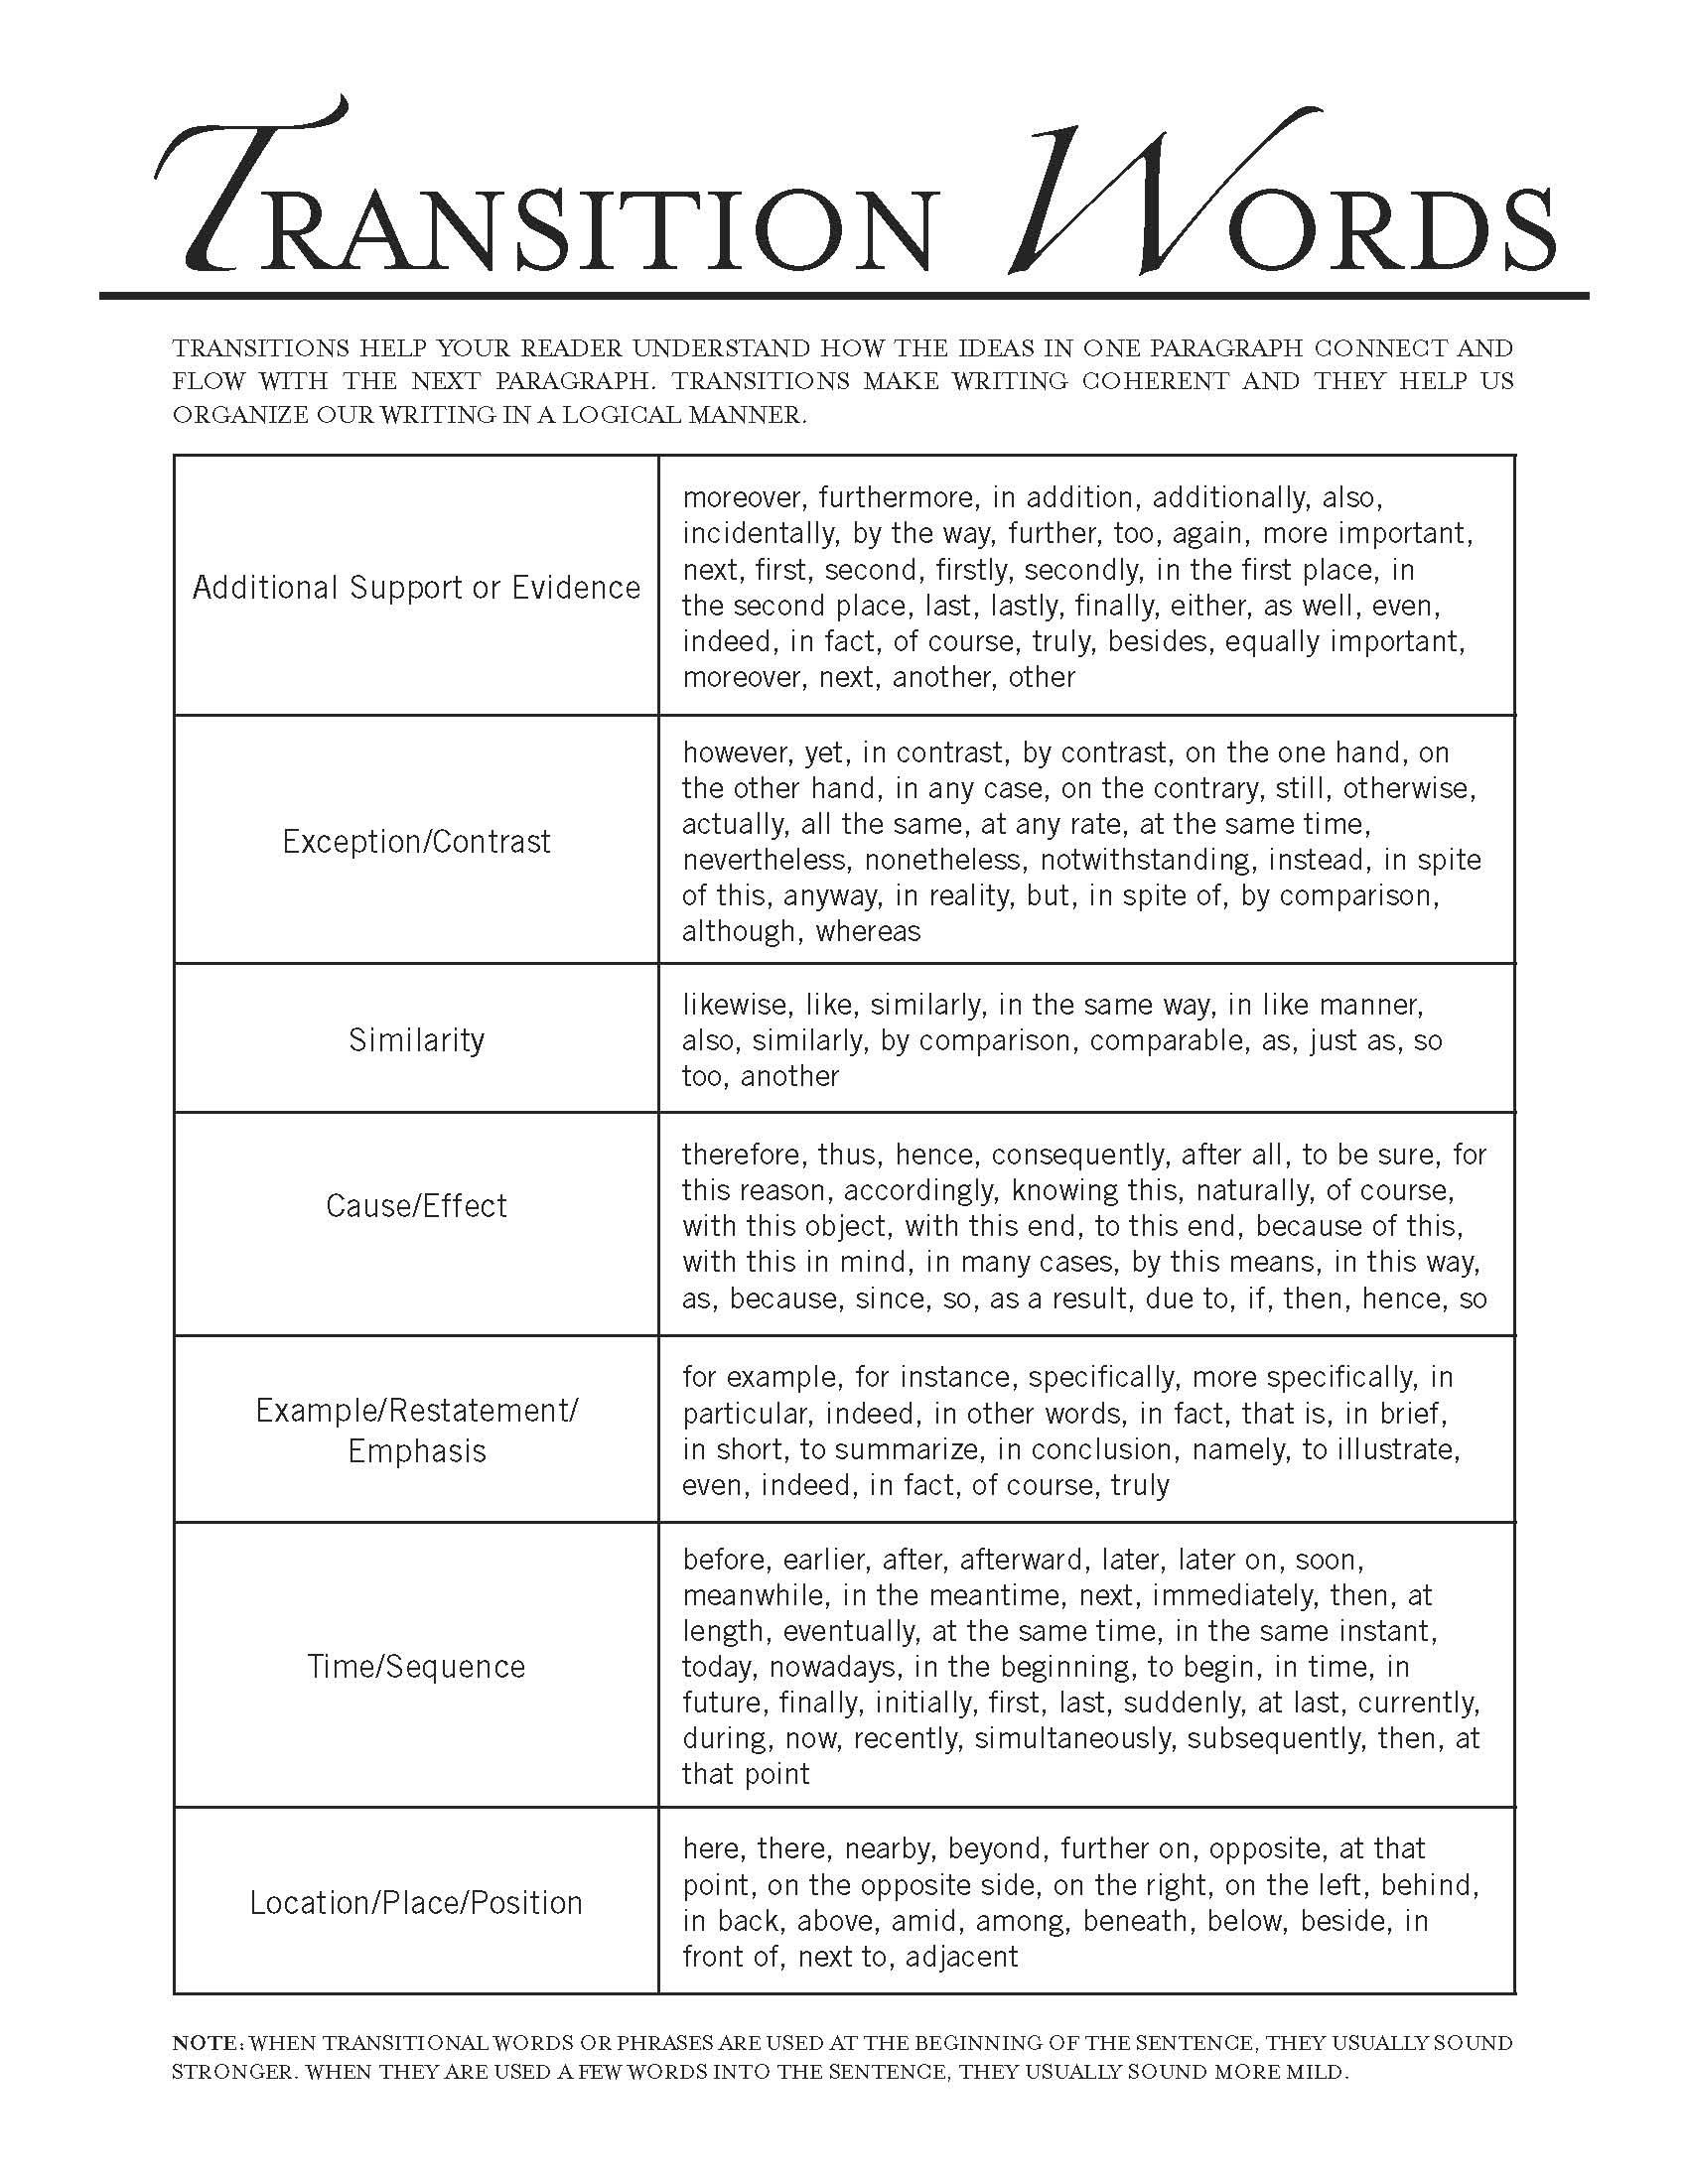 002 Transition Words For An Essay Wondrous Exemplification And Phrases Argumentative Paragraph Essays Pdf Full